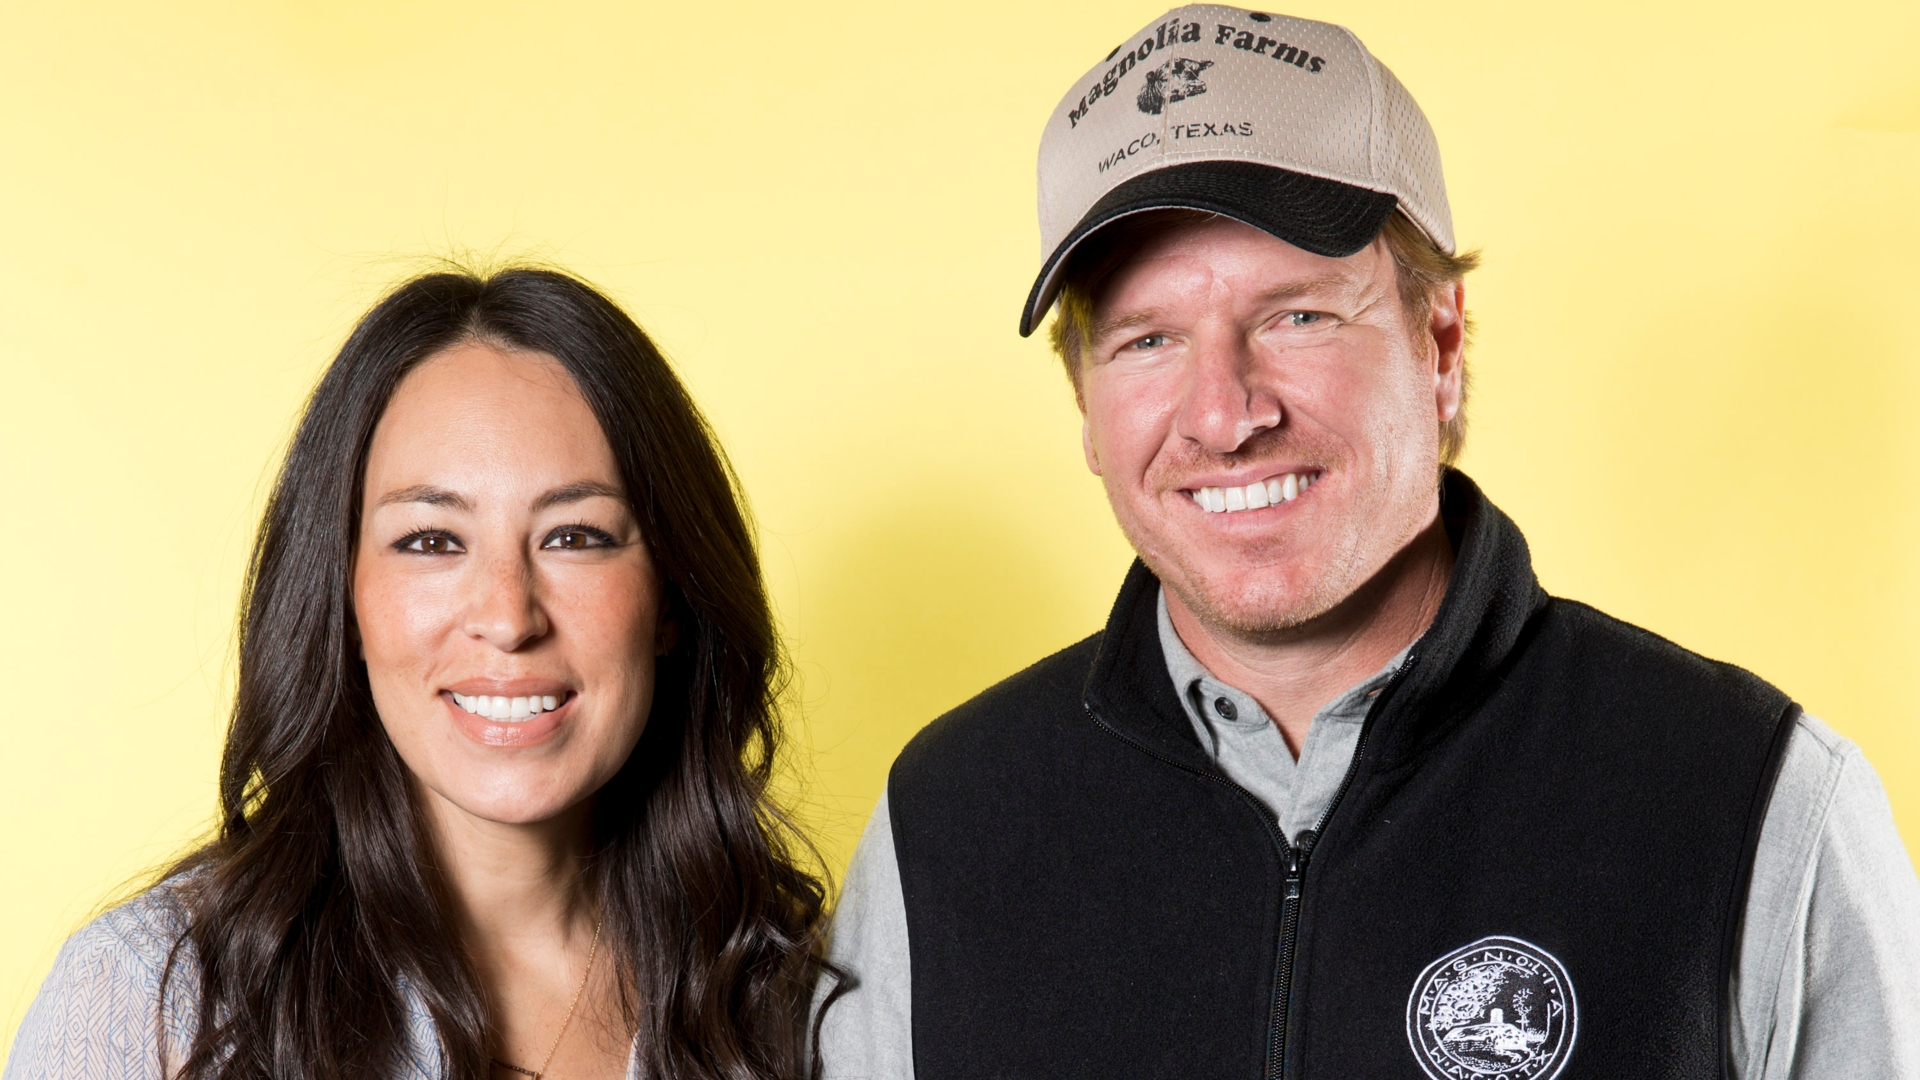 Chip Gaines Shares a Sweet Wedding Day Photo With Joanna On Their 17th Anniversary